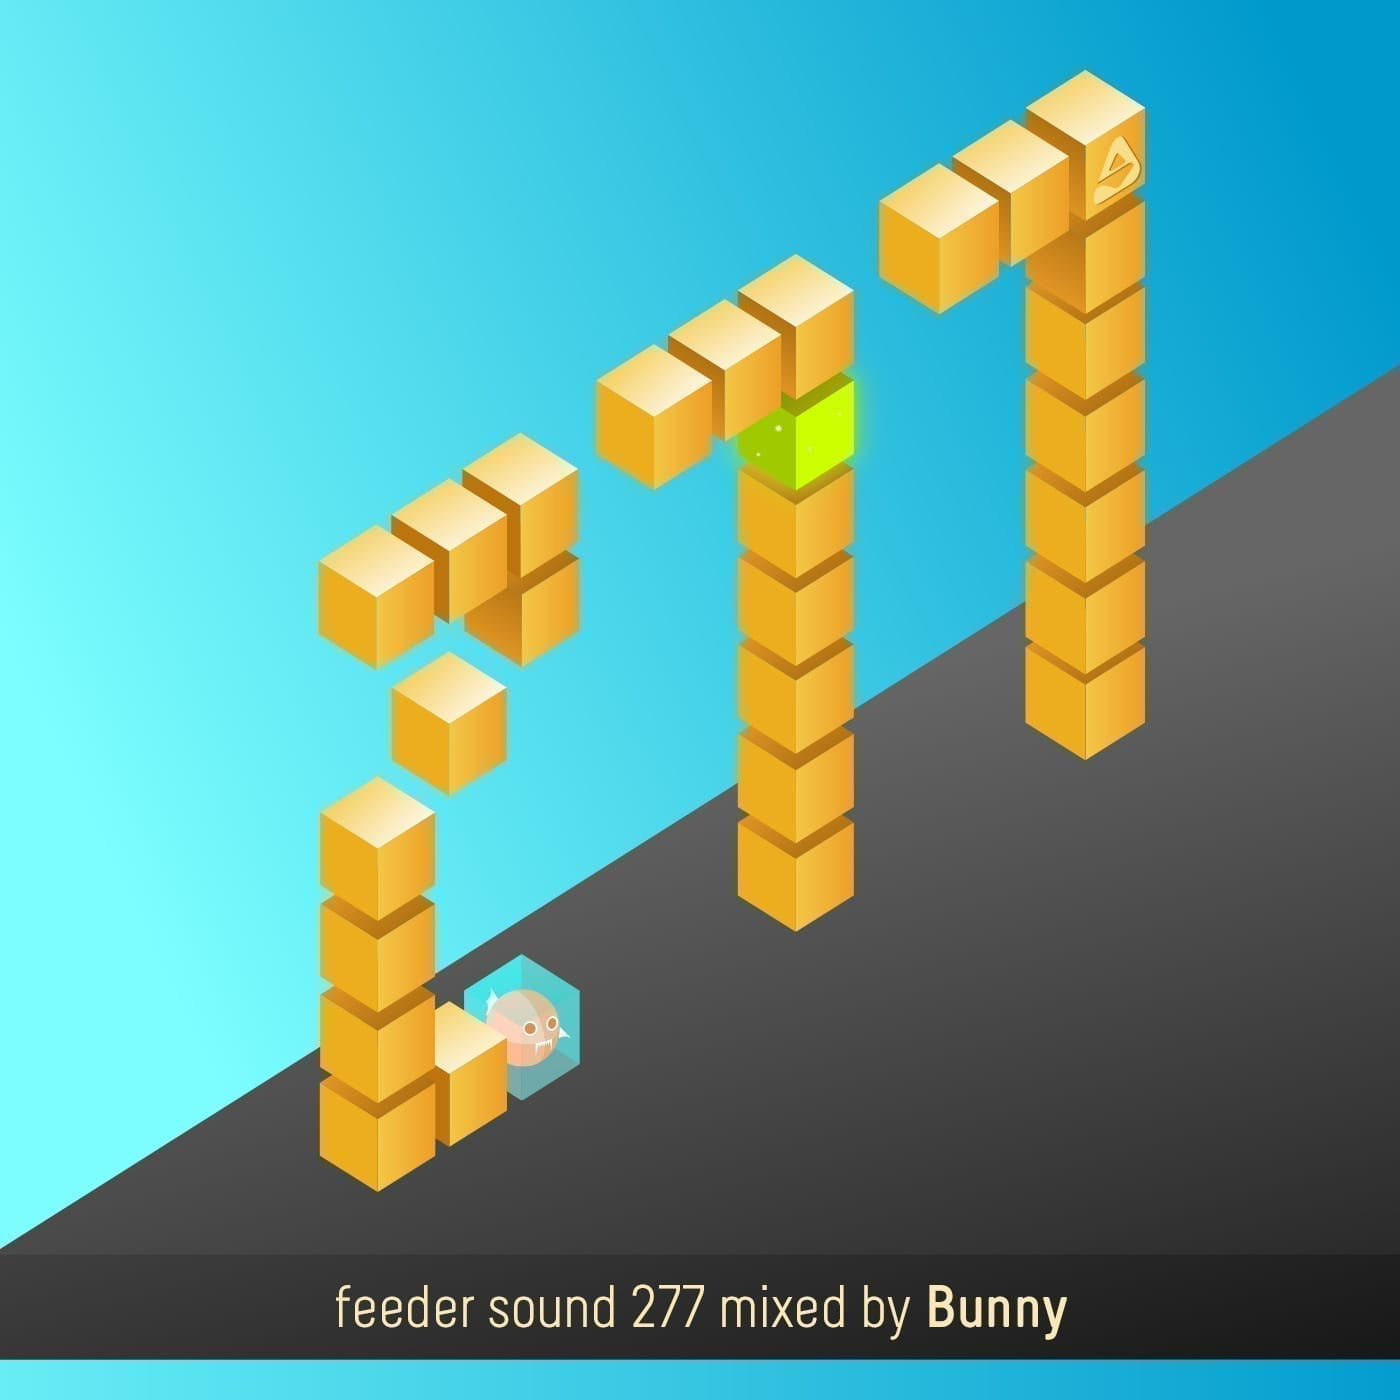 feeder sound 277 mixed by Bunny 01